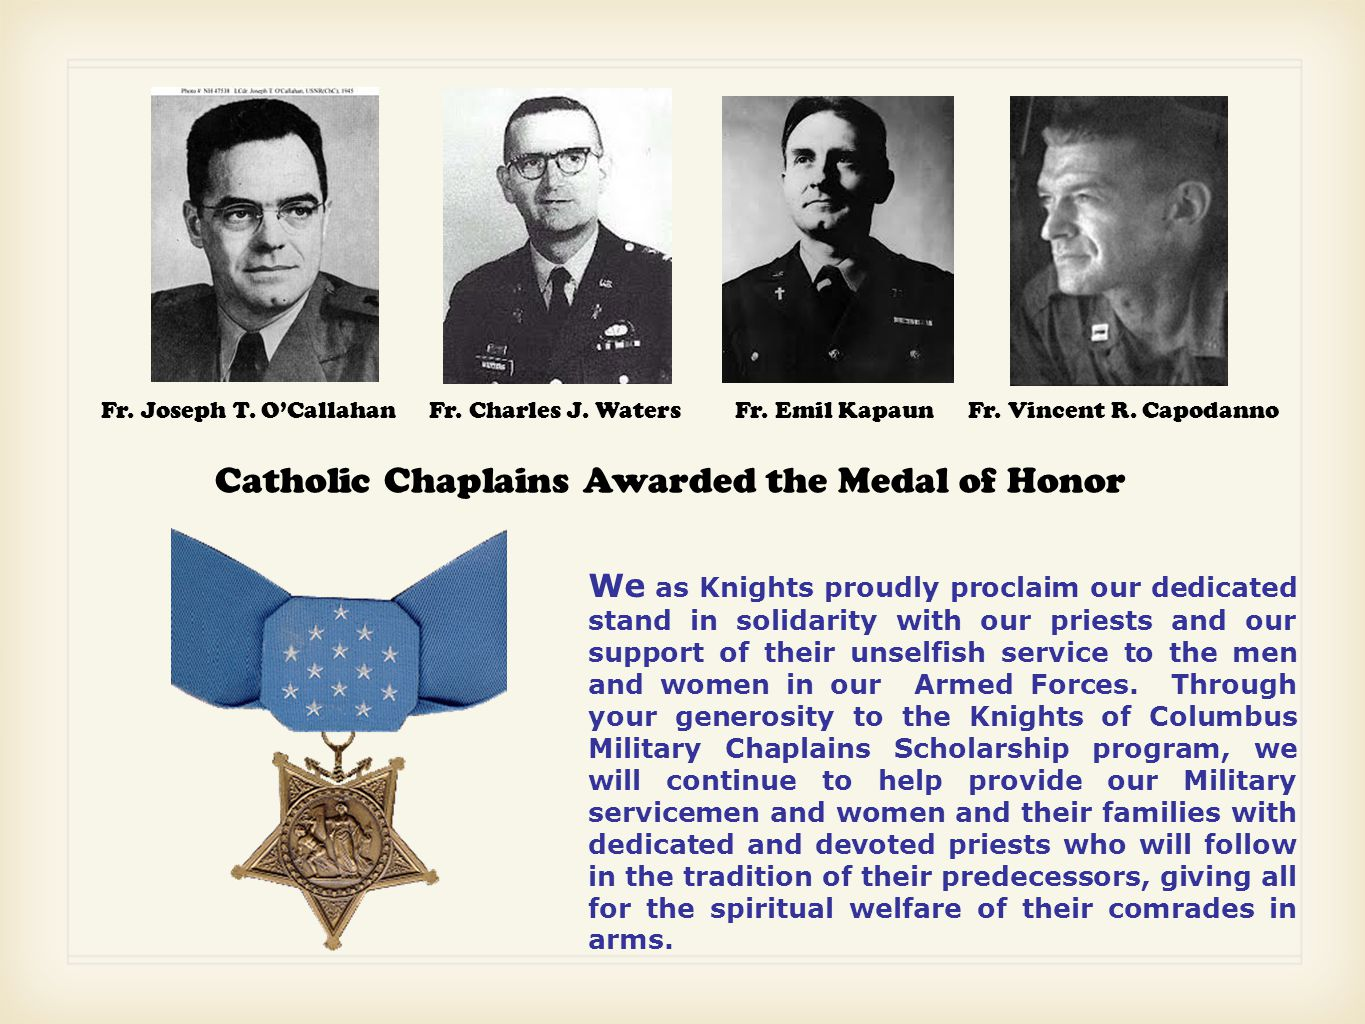 Fr. Joseph T. O'CallahanFr. Vincent R. CapodannoFr. Charles J. WatersFr. Emil Kapaun Catholic Chaplains Awarded the Medal of Honor We as Knights proud